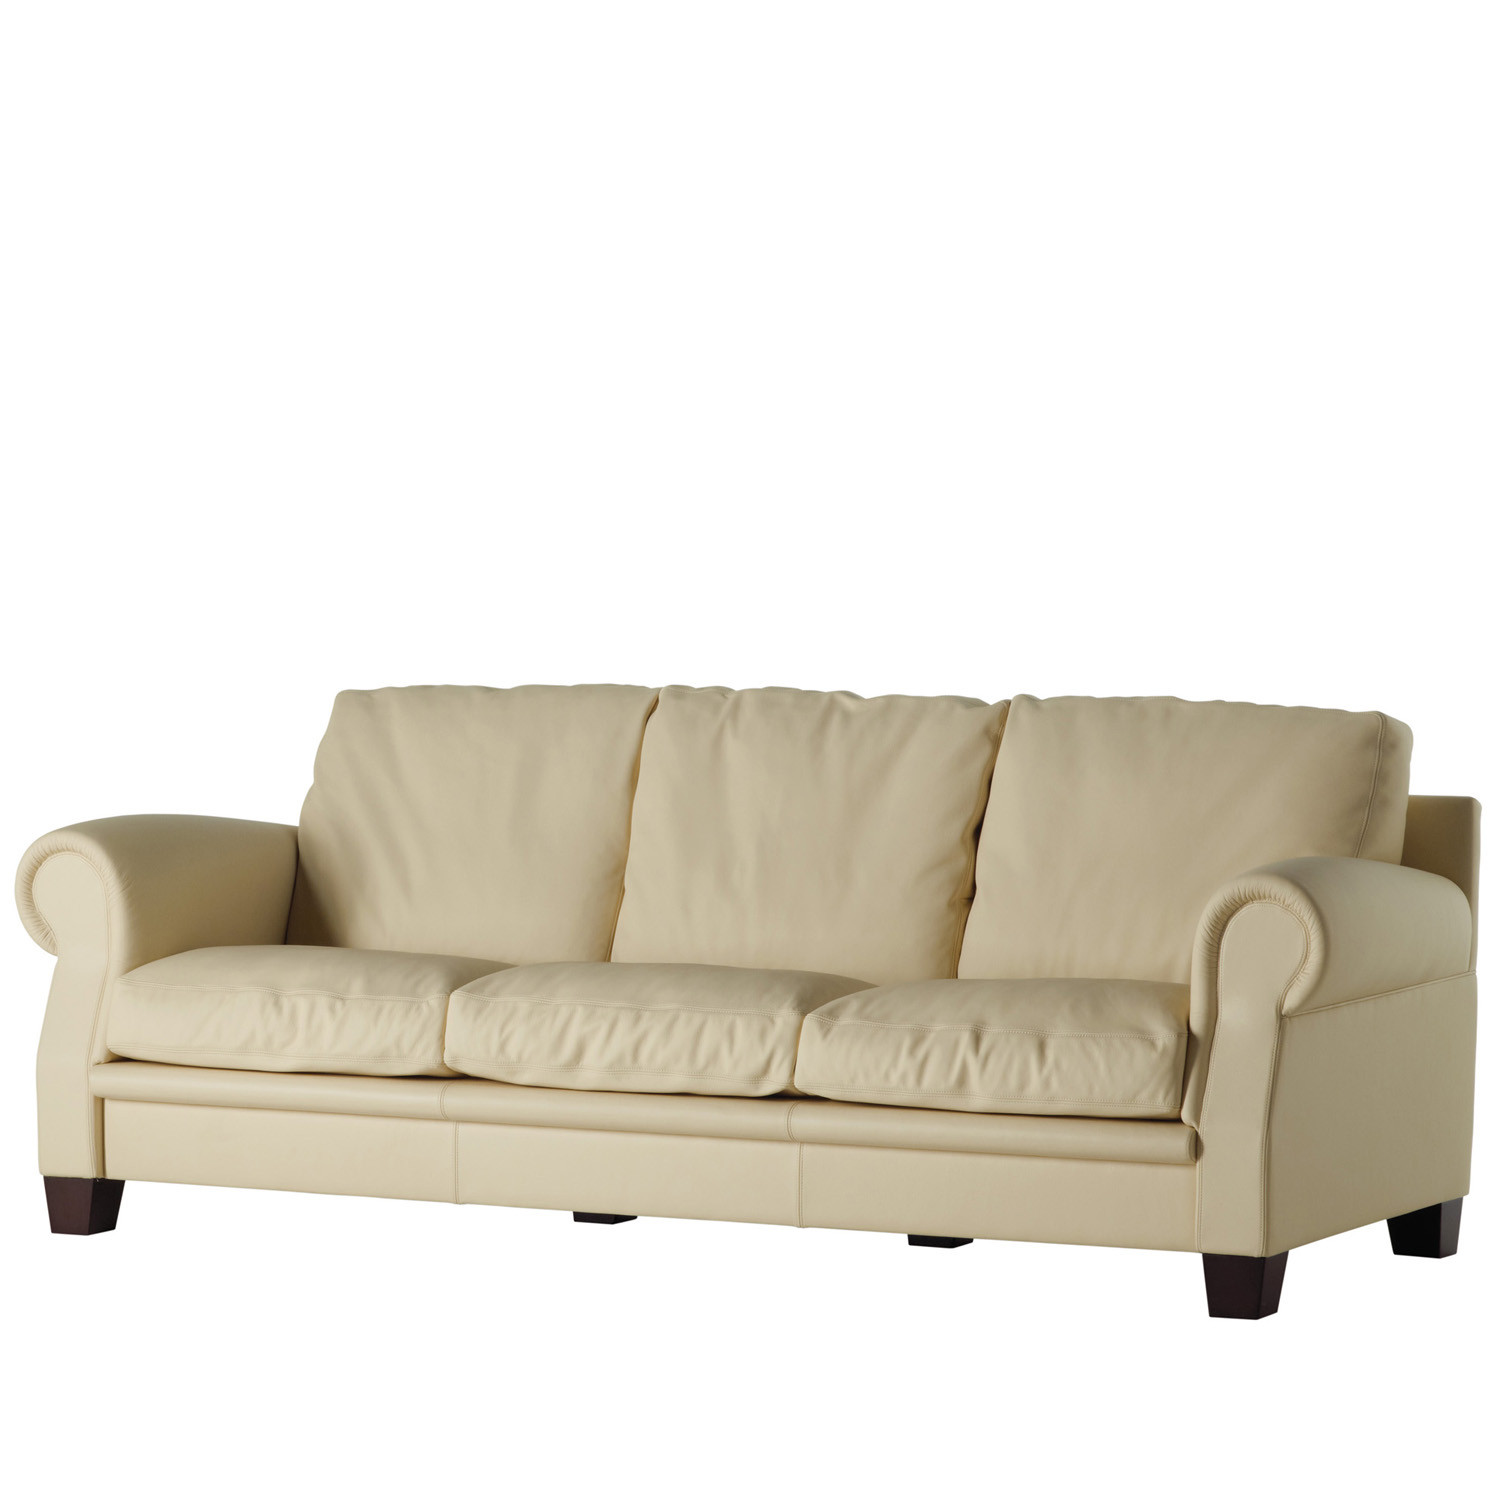 Austen Sofa from Poltrona Frau